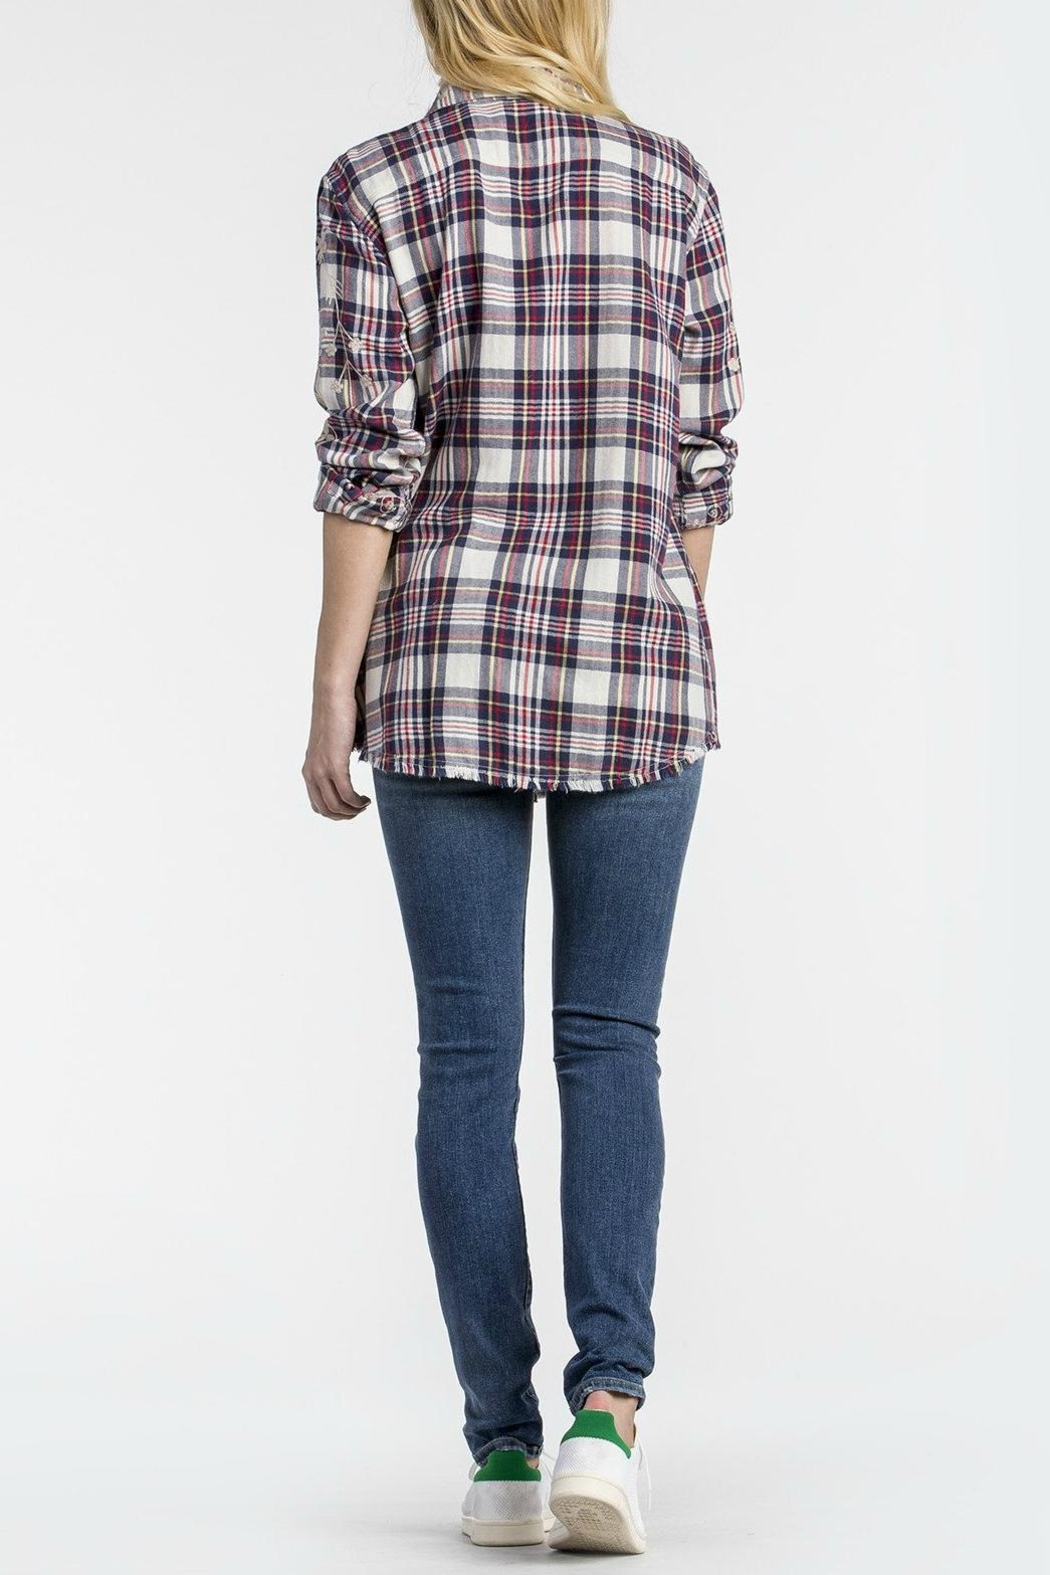 MM Vintage Scroll Embroidered Plaid Top - Front Full Image